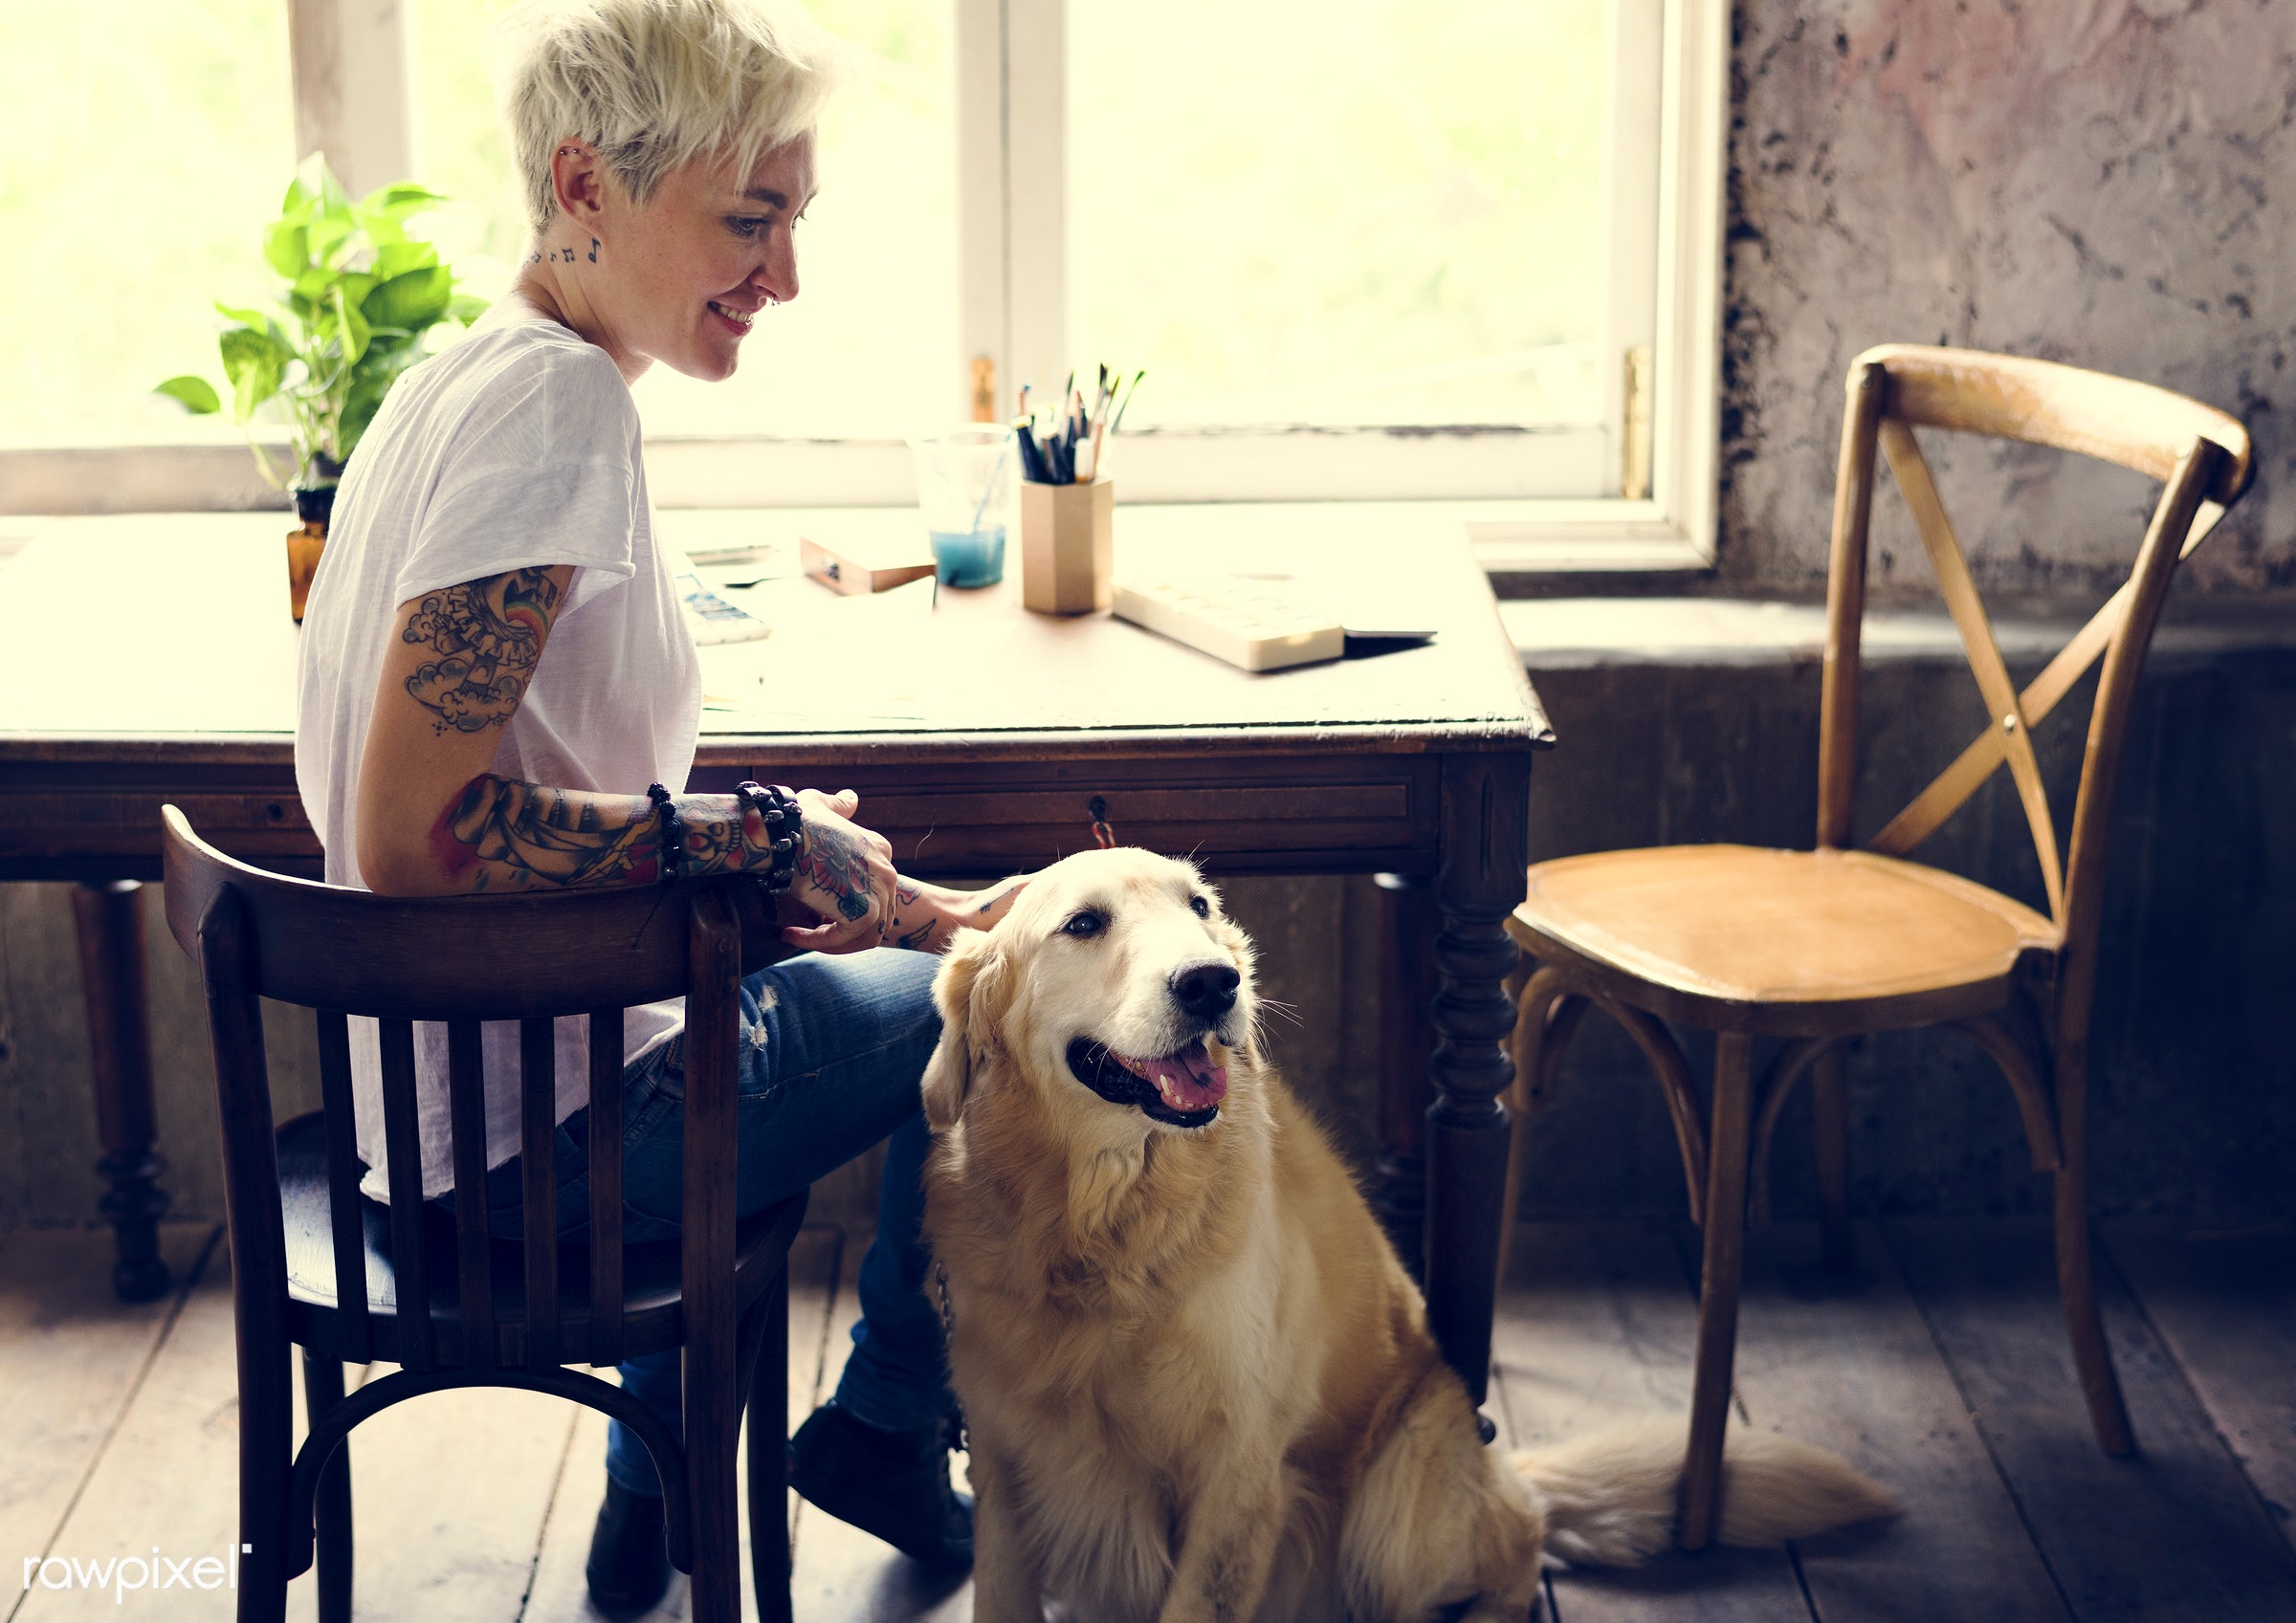 breed, relax, together, caucasian, break, friends, woman, tattoo, cheerful, hobby, leisure, canine, sitting, owner, adorable...